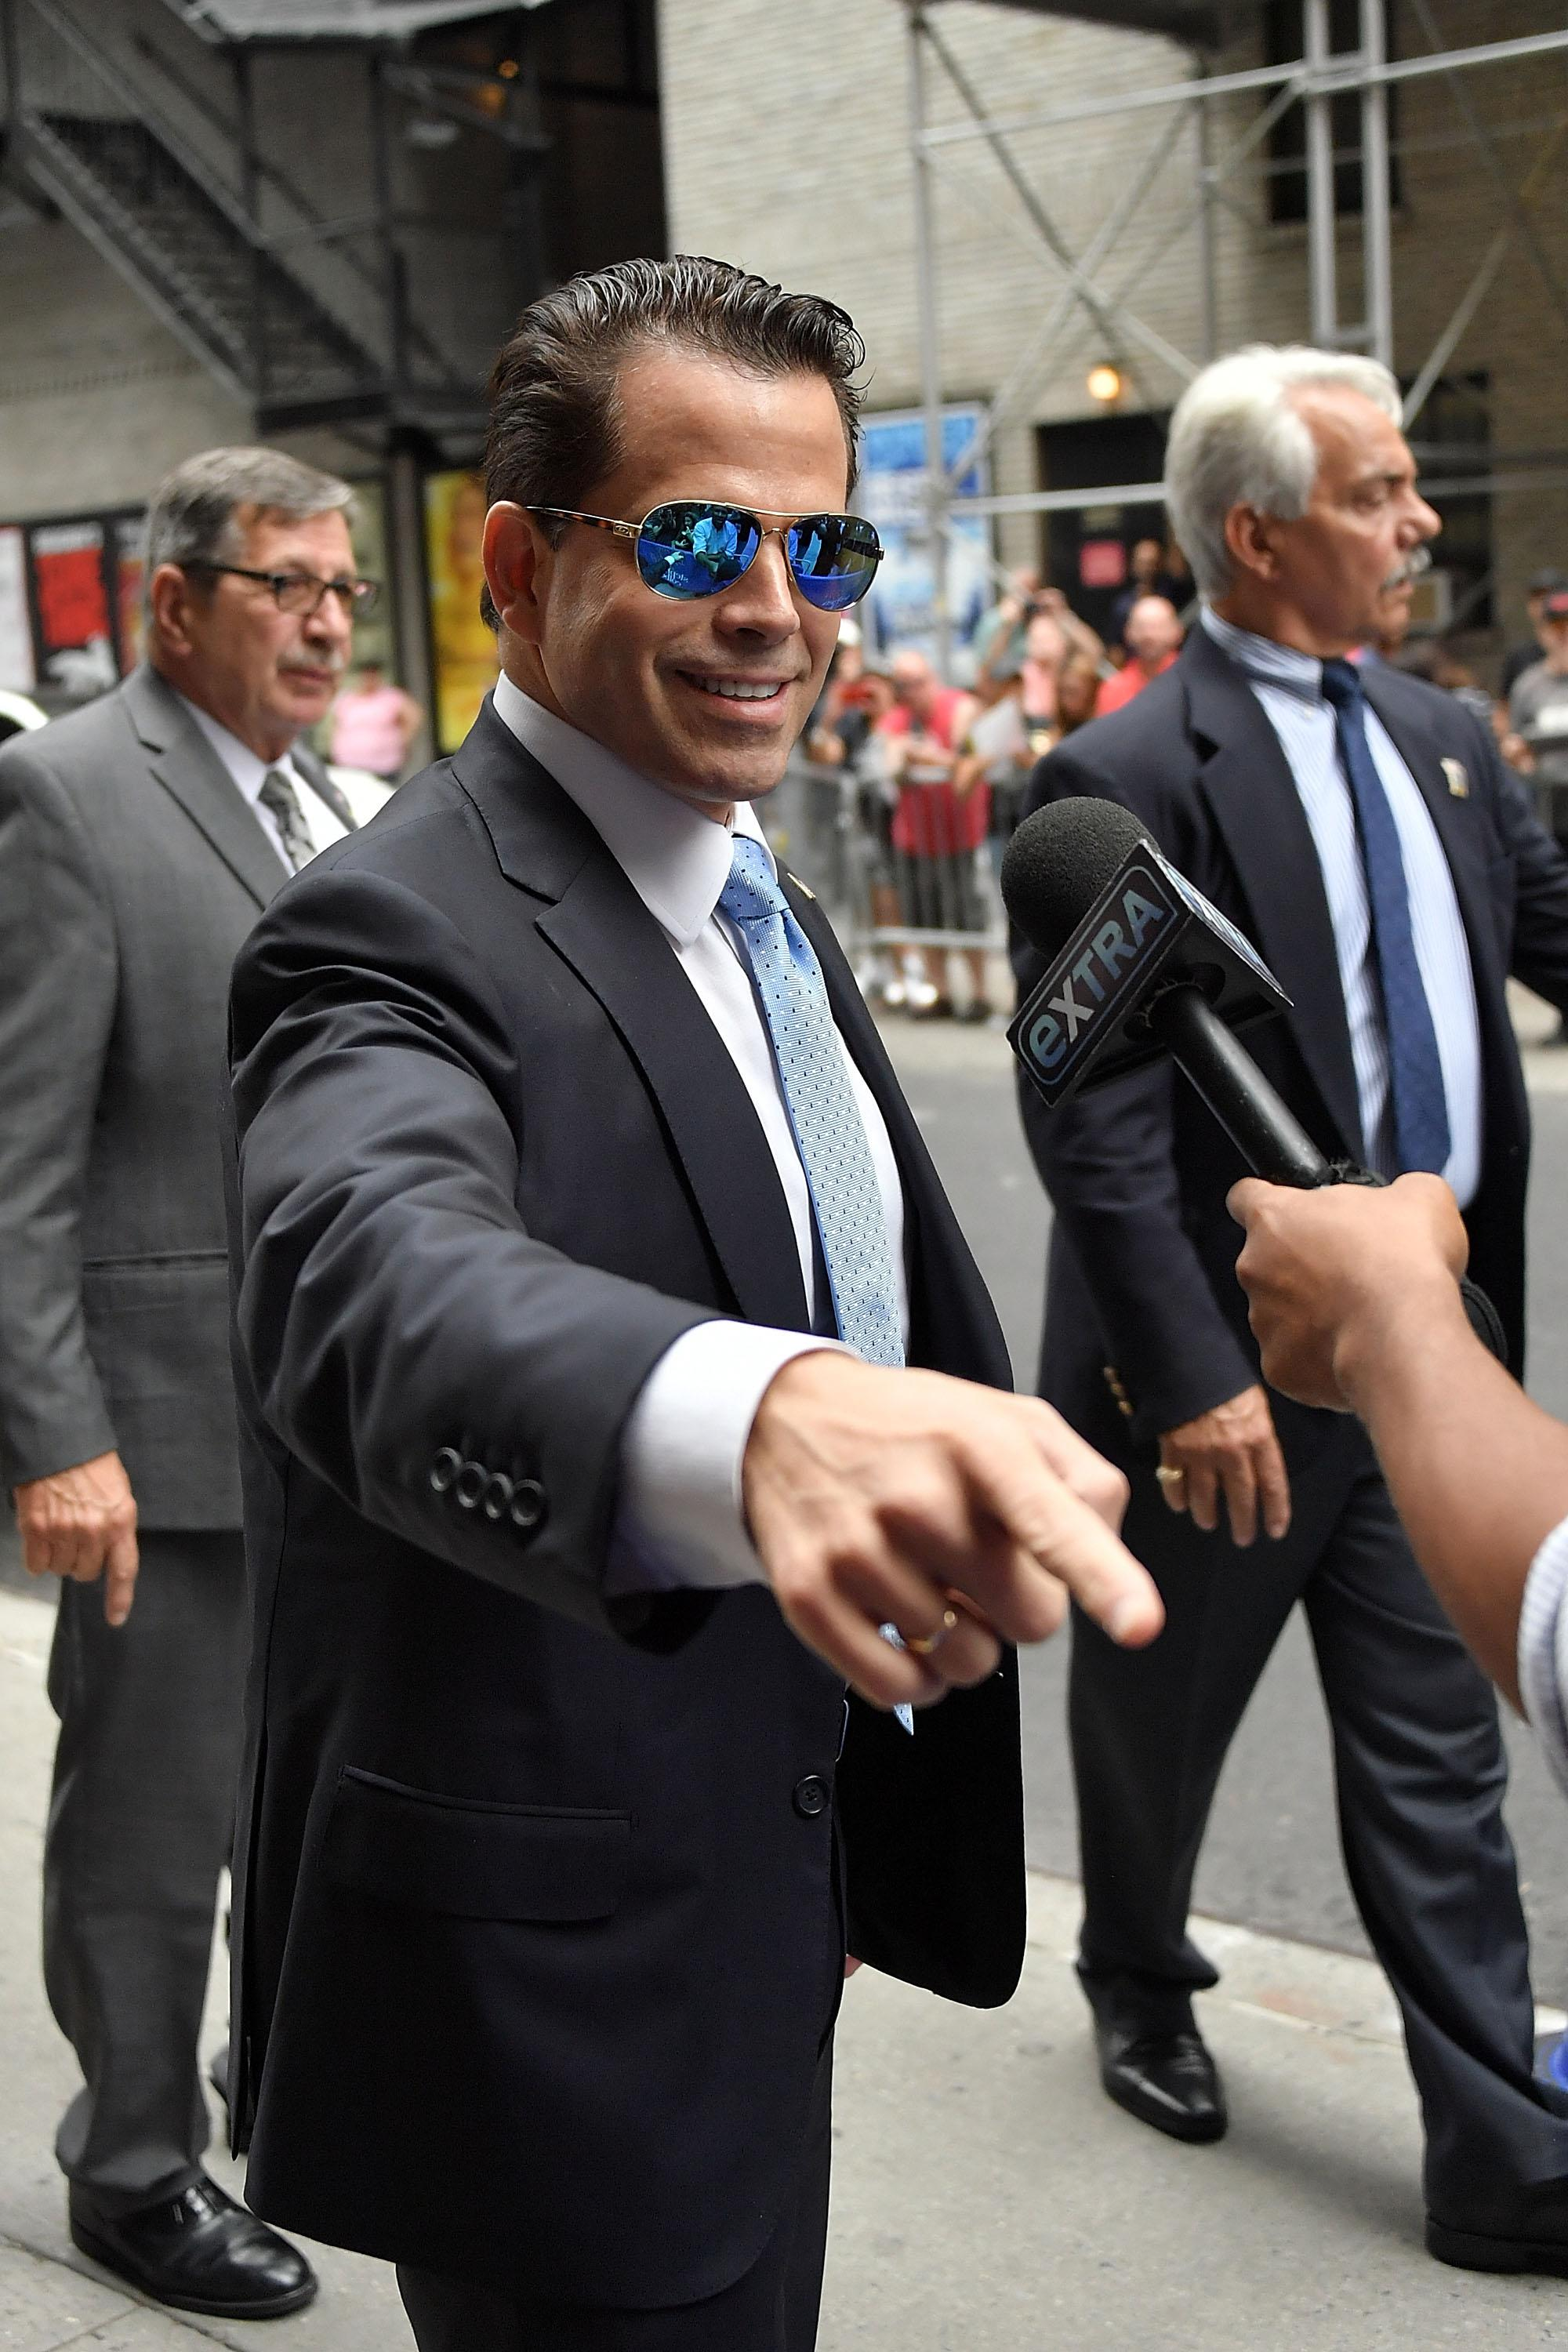 Anthony Scaramucci, in mirror shades, headed in to The Late Show with Stephen Colbert.